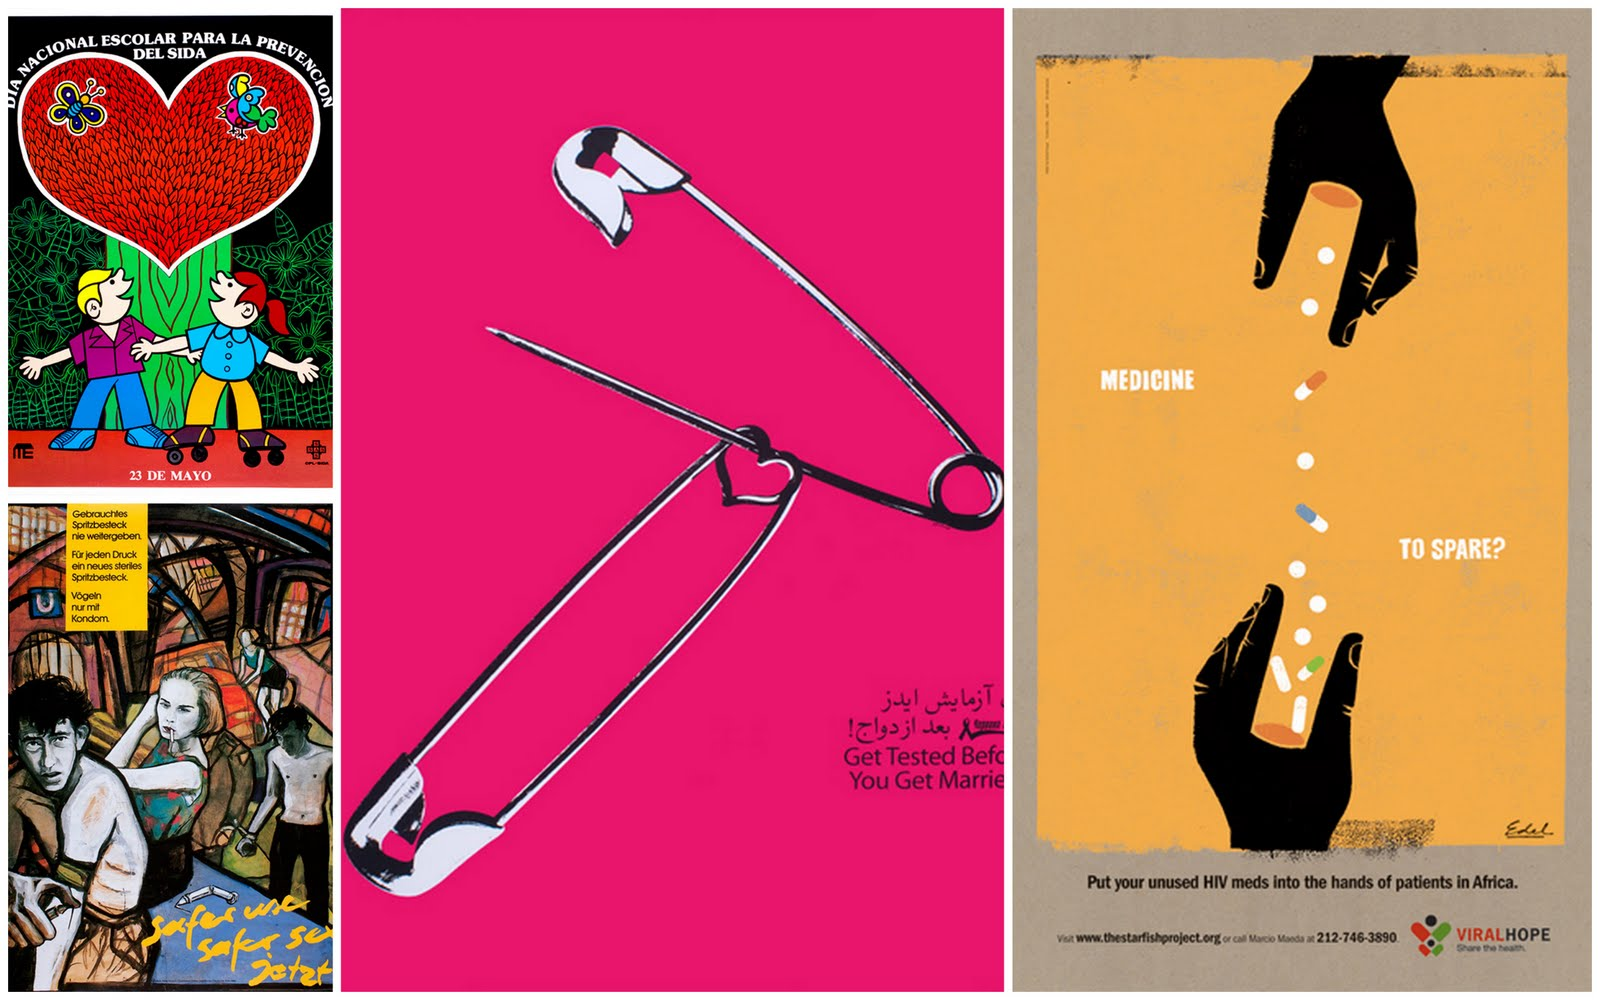 Kenneth Cole Sponsors AIDS Awareness Exhibit  Fashion Design Posters